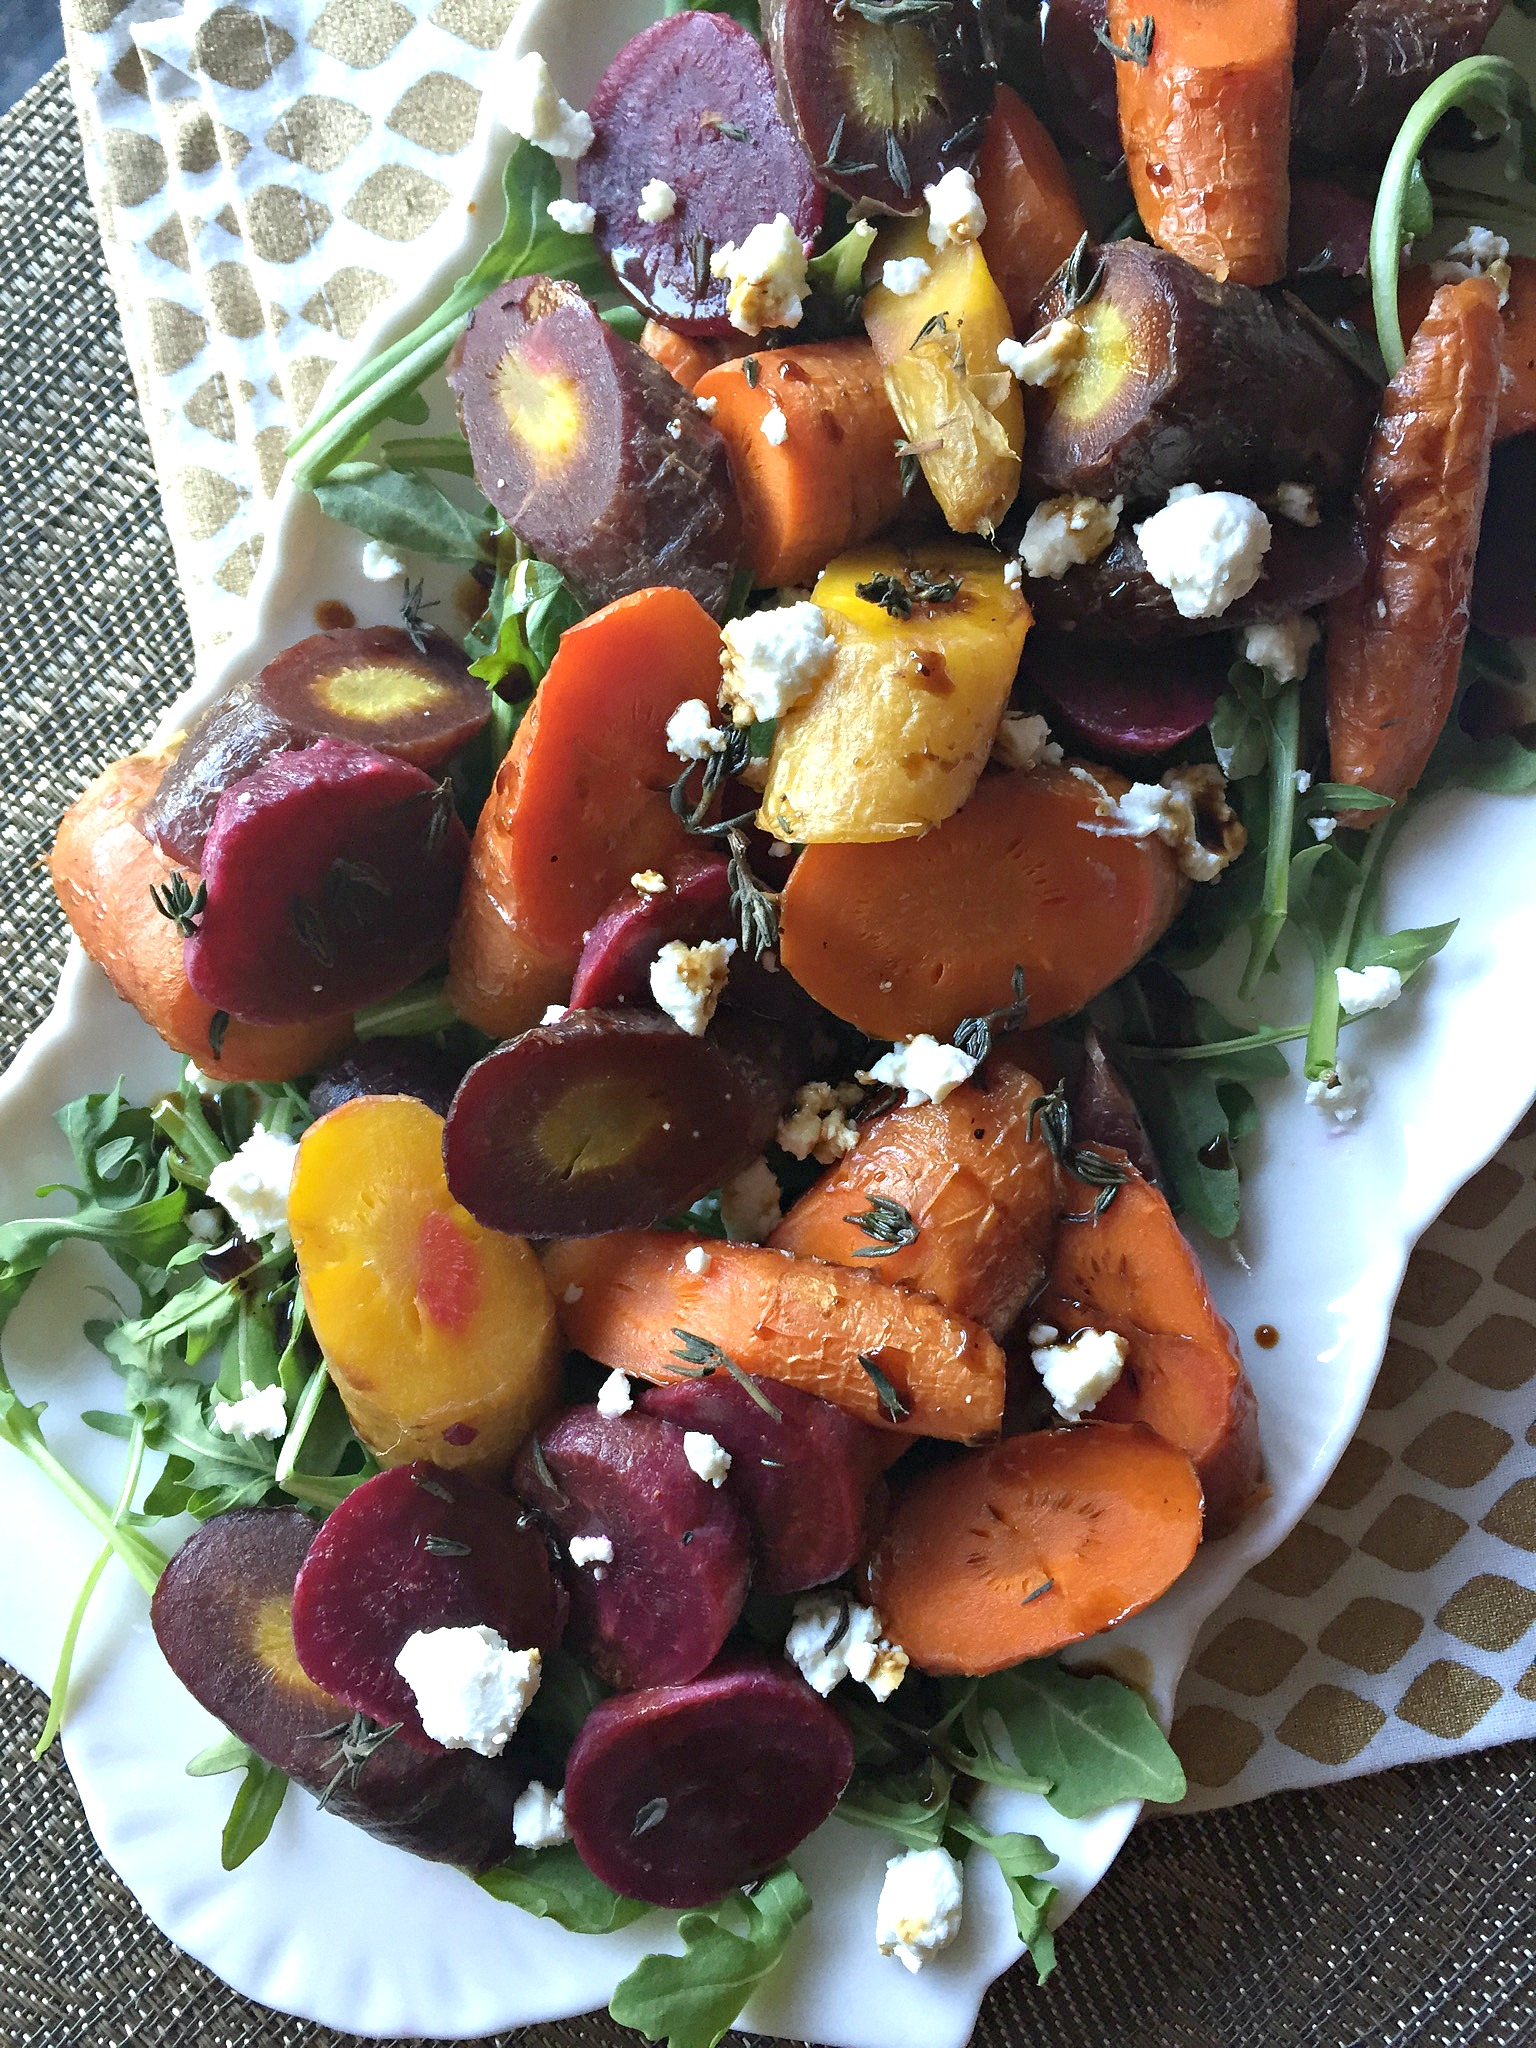 Thyme Roasted Carrots and Beets with Balsamic and Goat Cheese